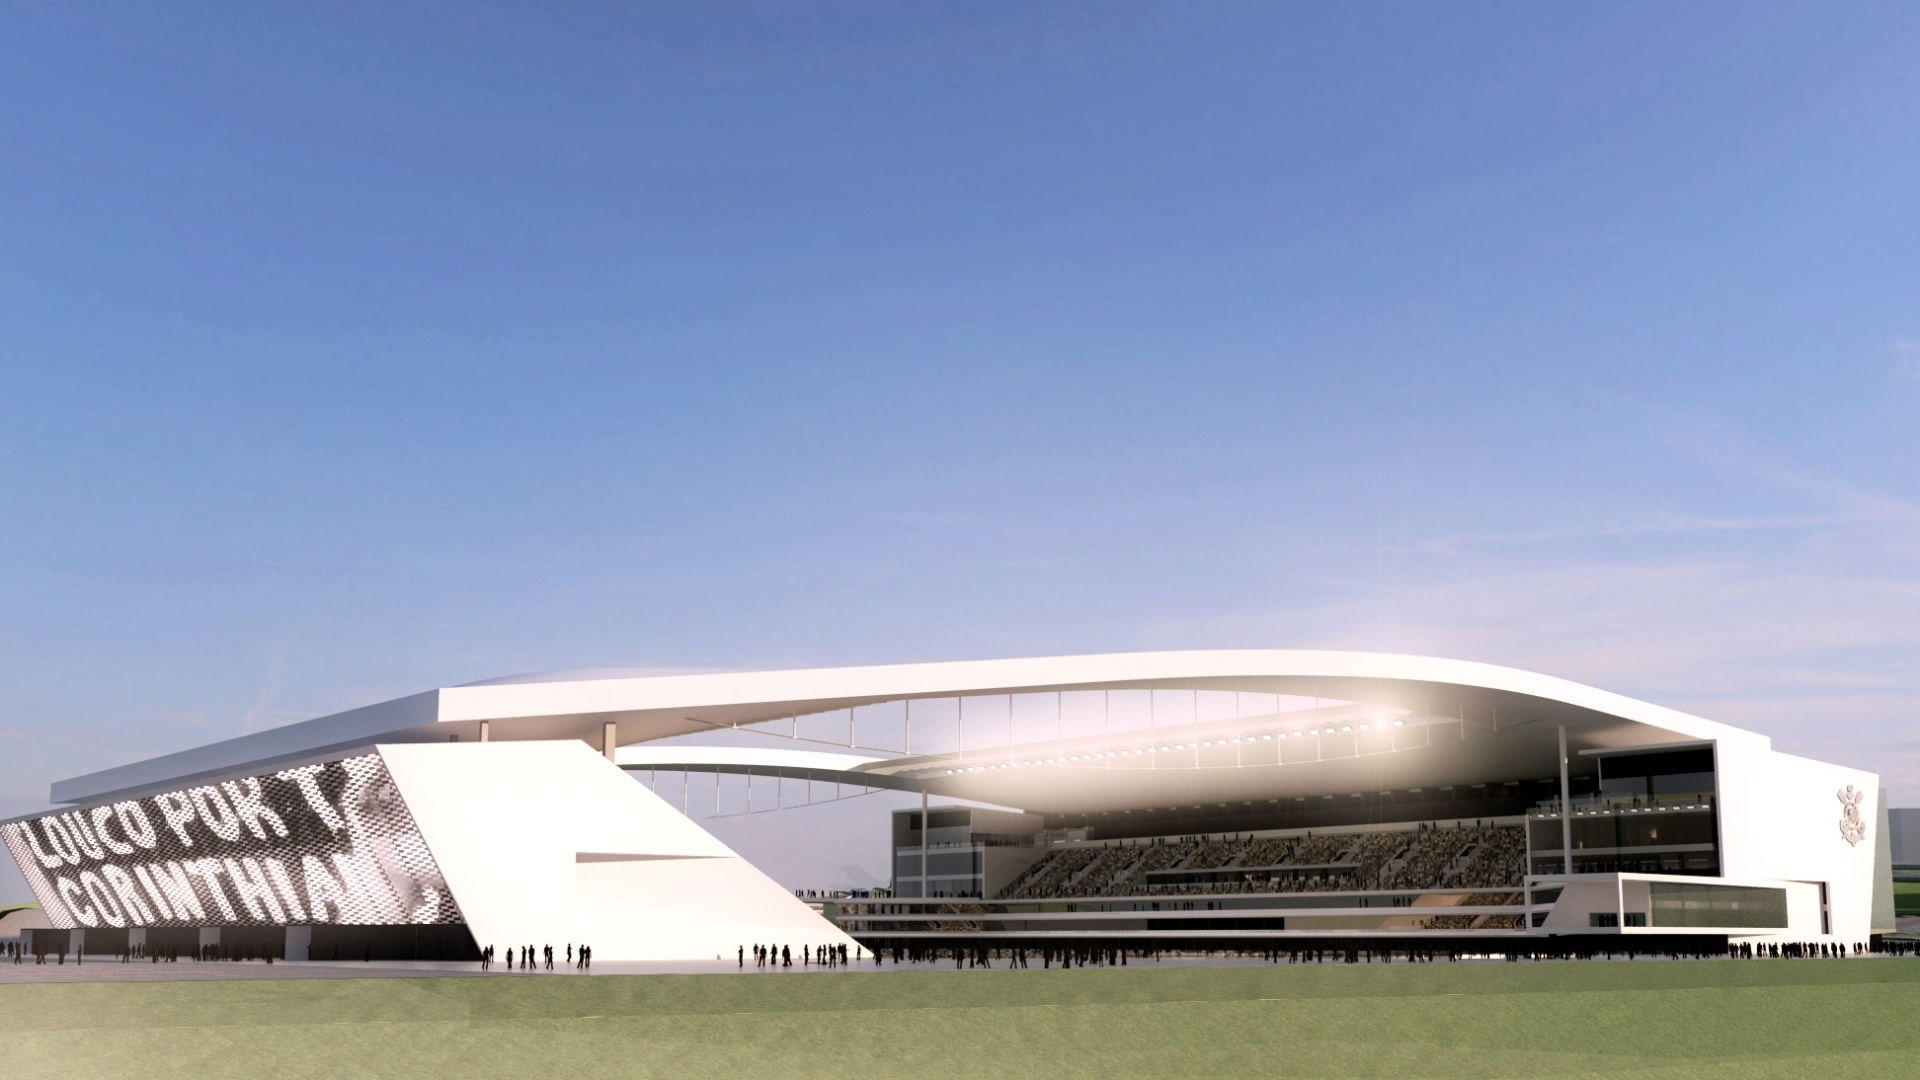 Maquete digital da arena do Corinthians